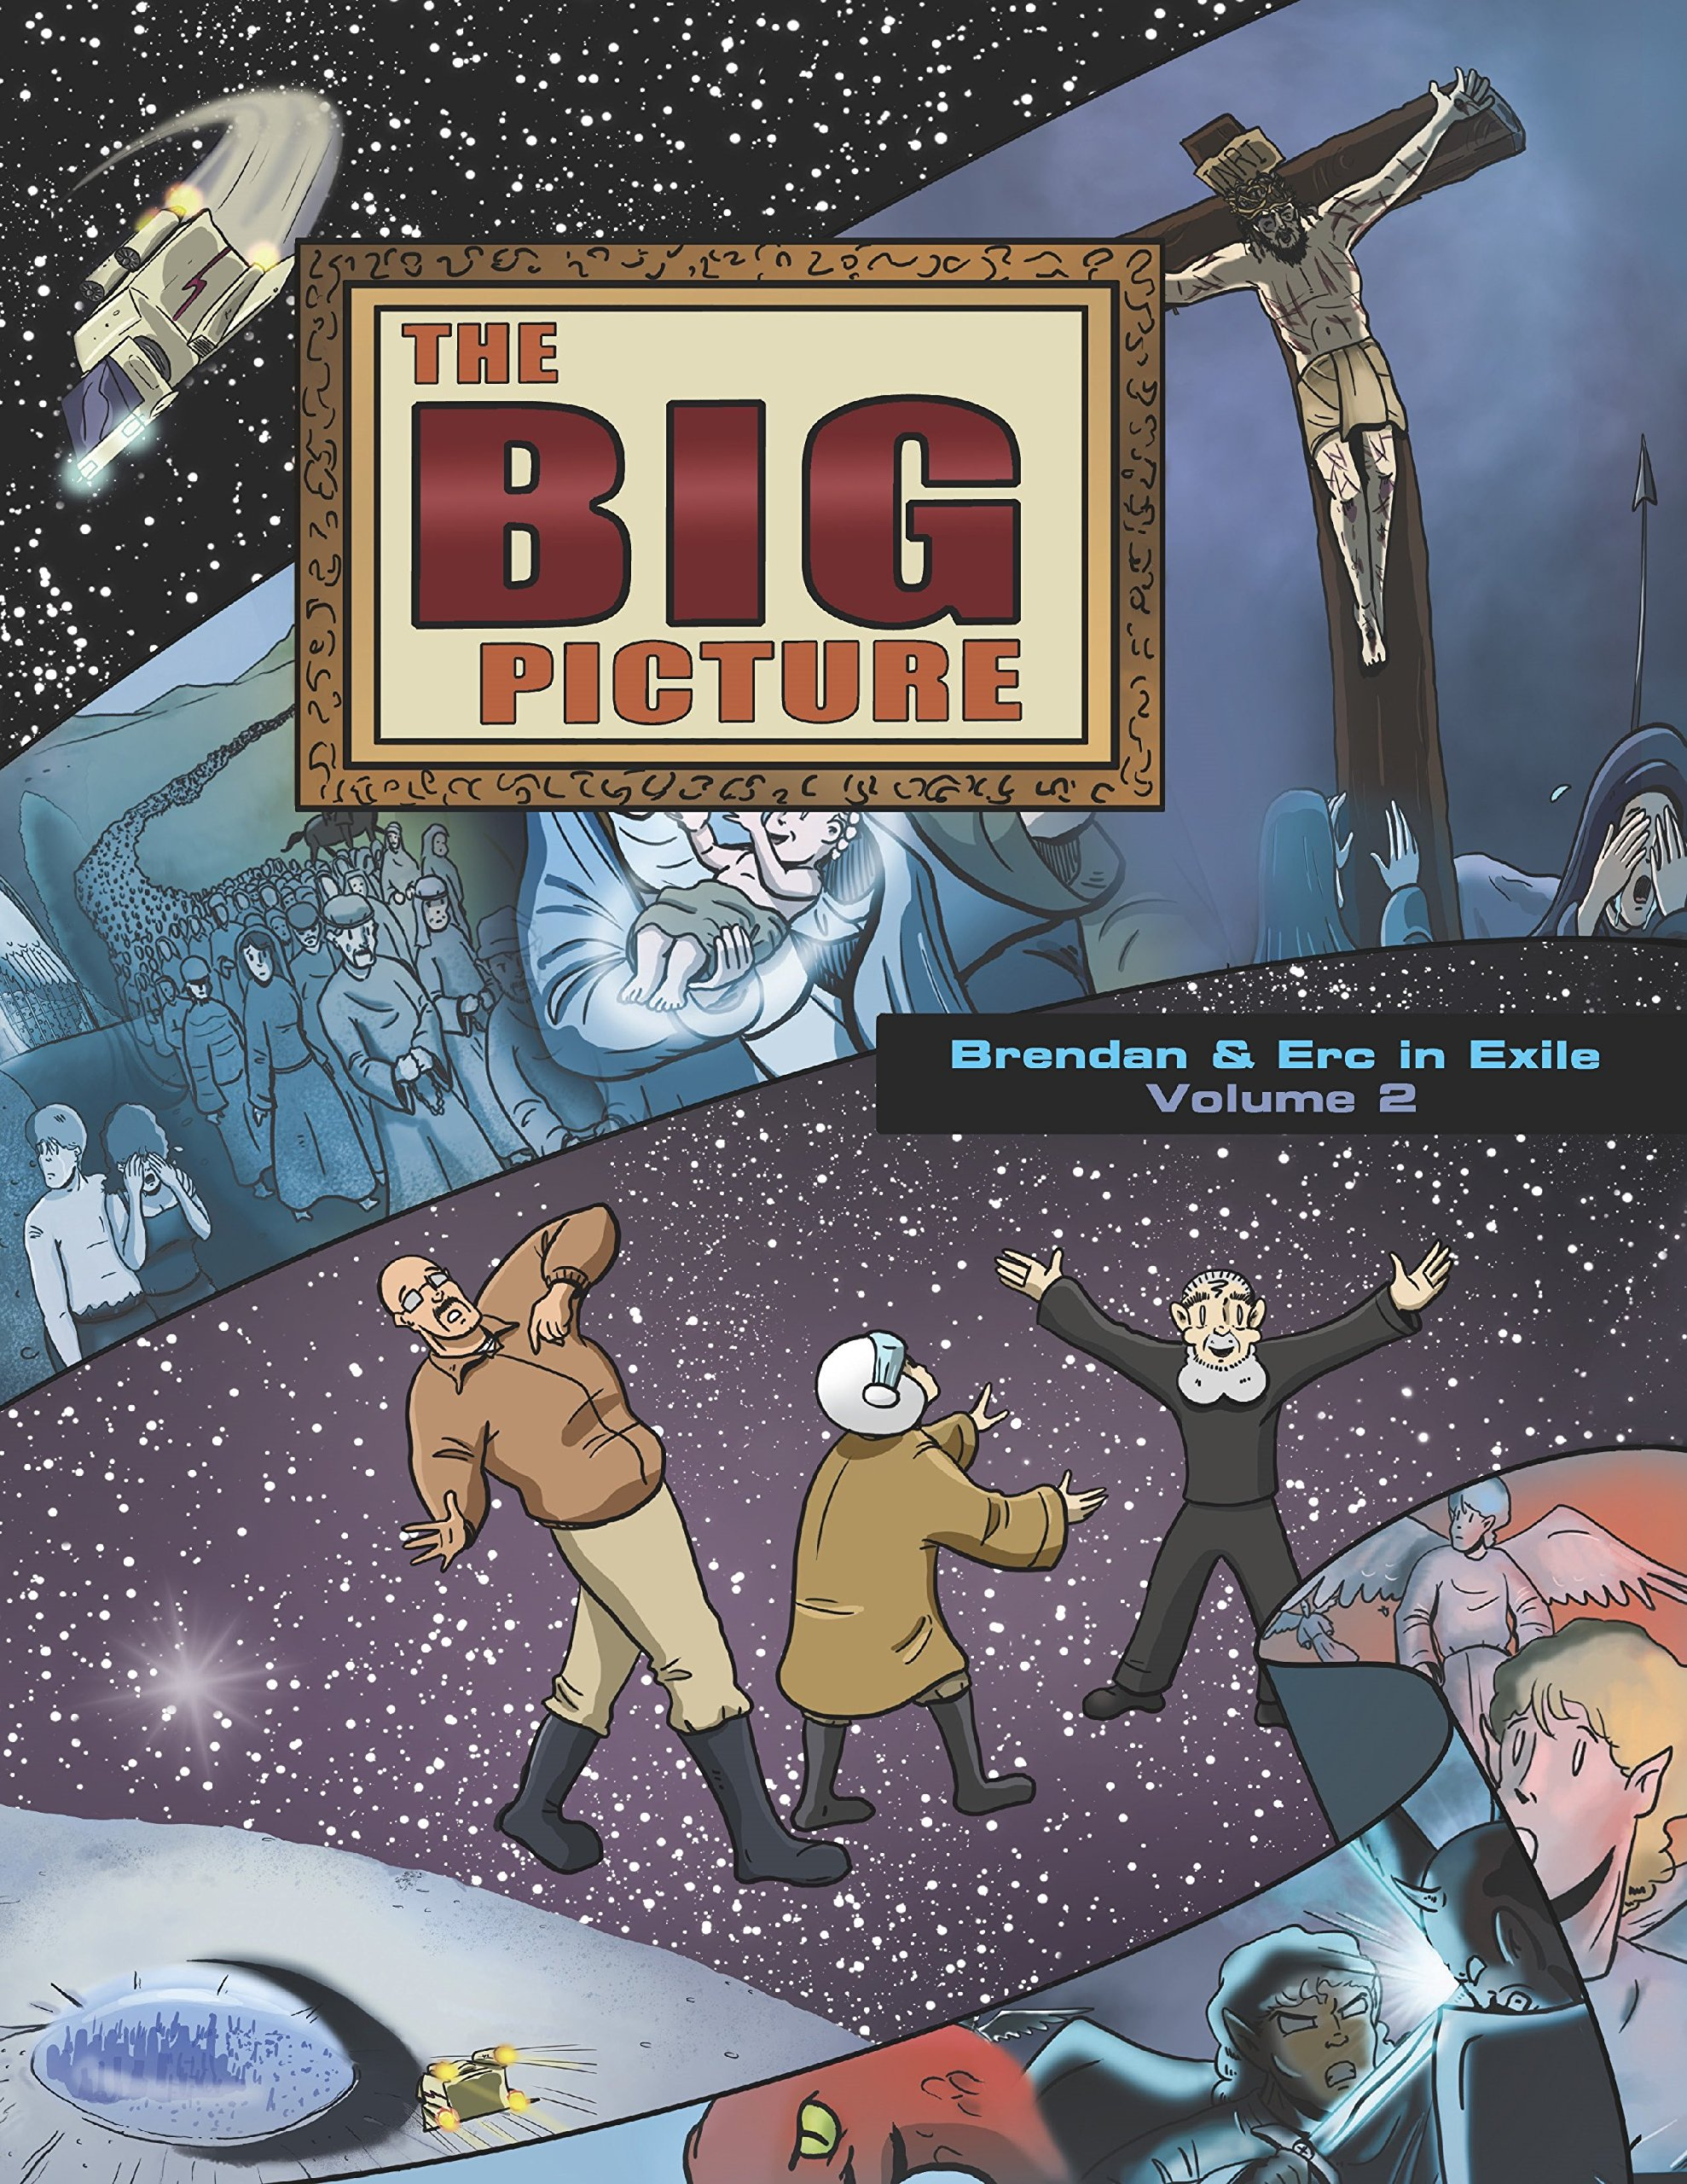 The Big Picture: Brendan and Erc in Exile Volume 2